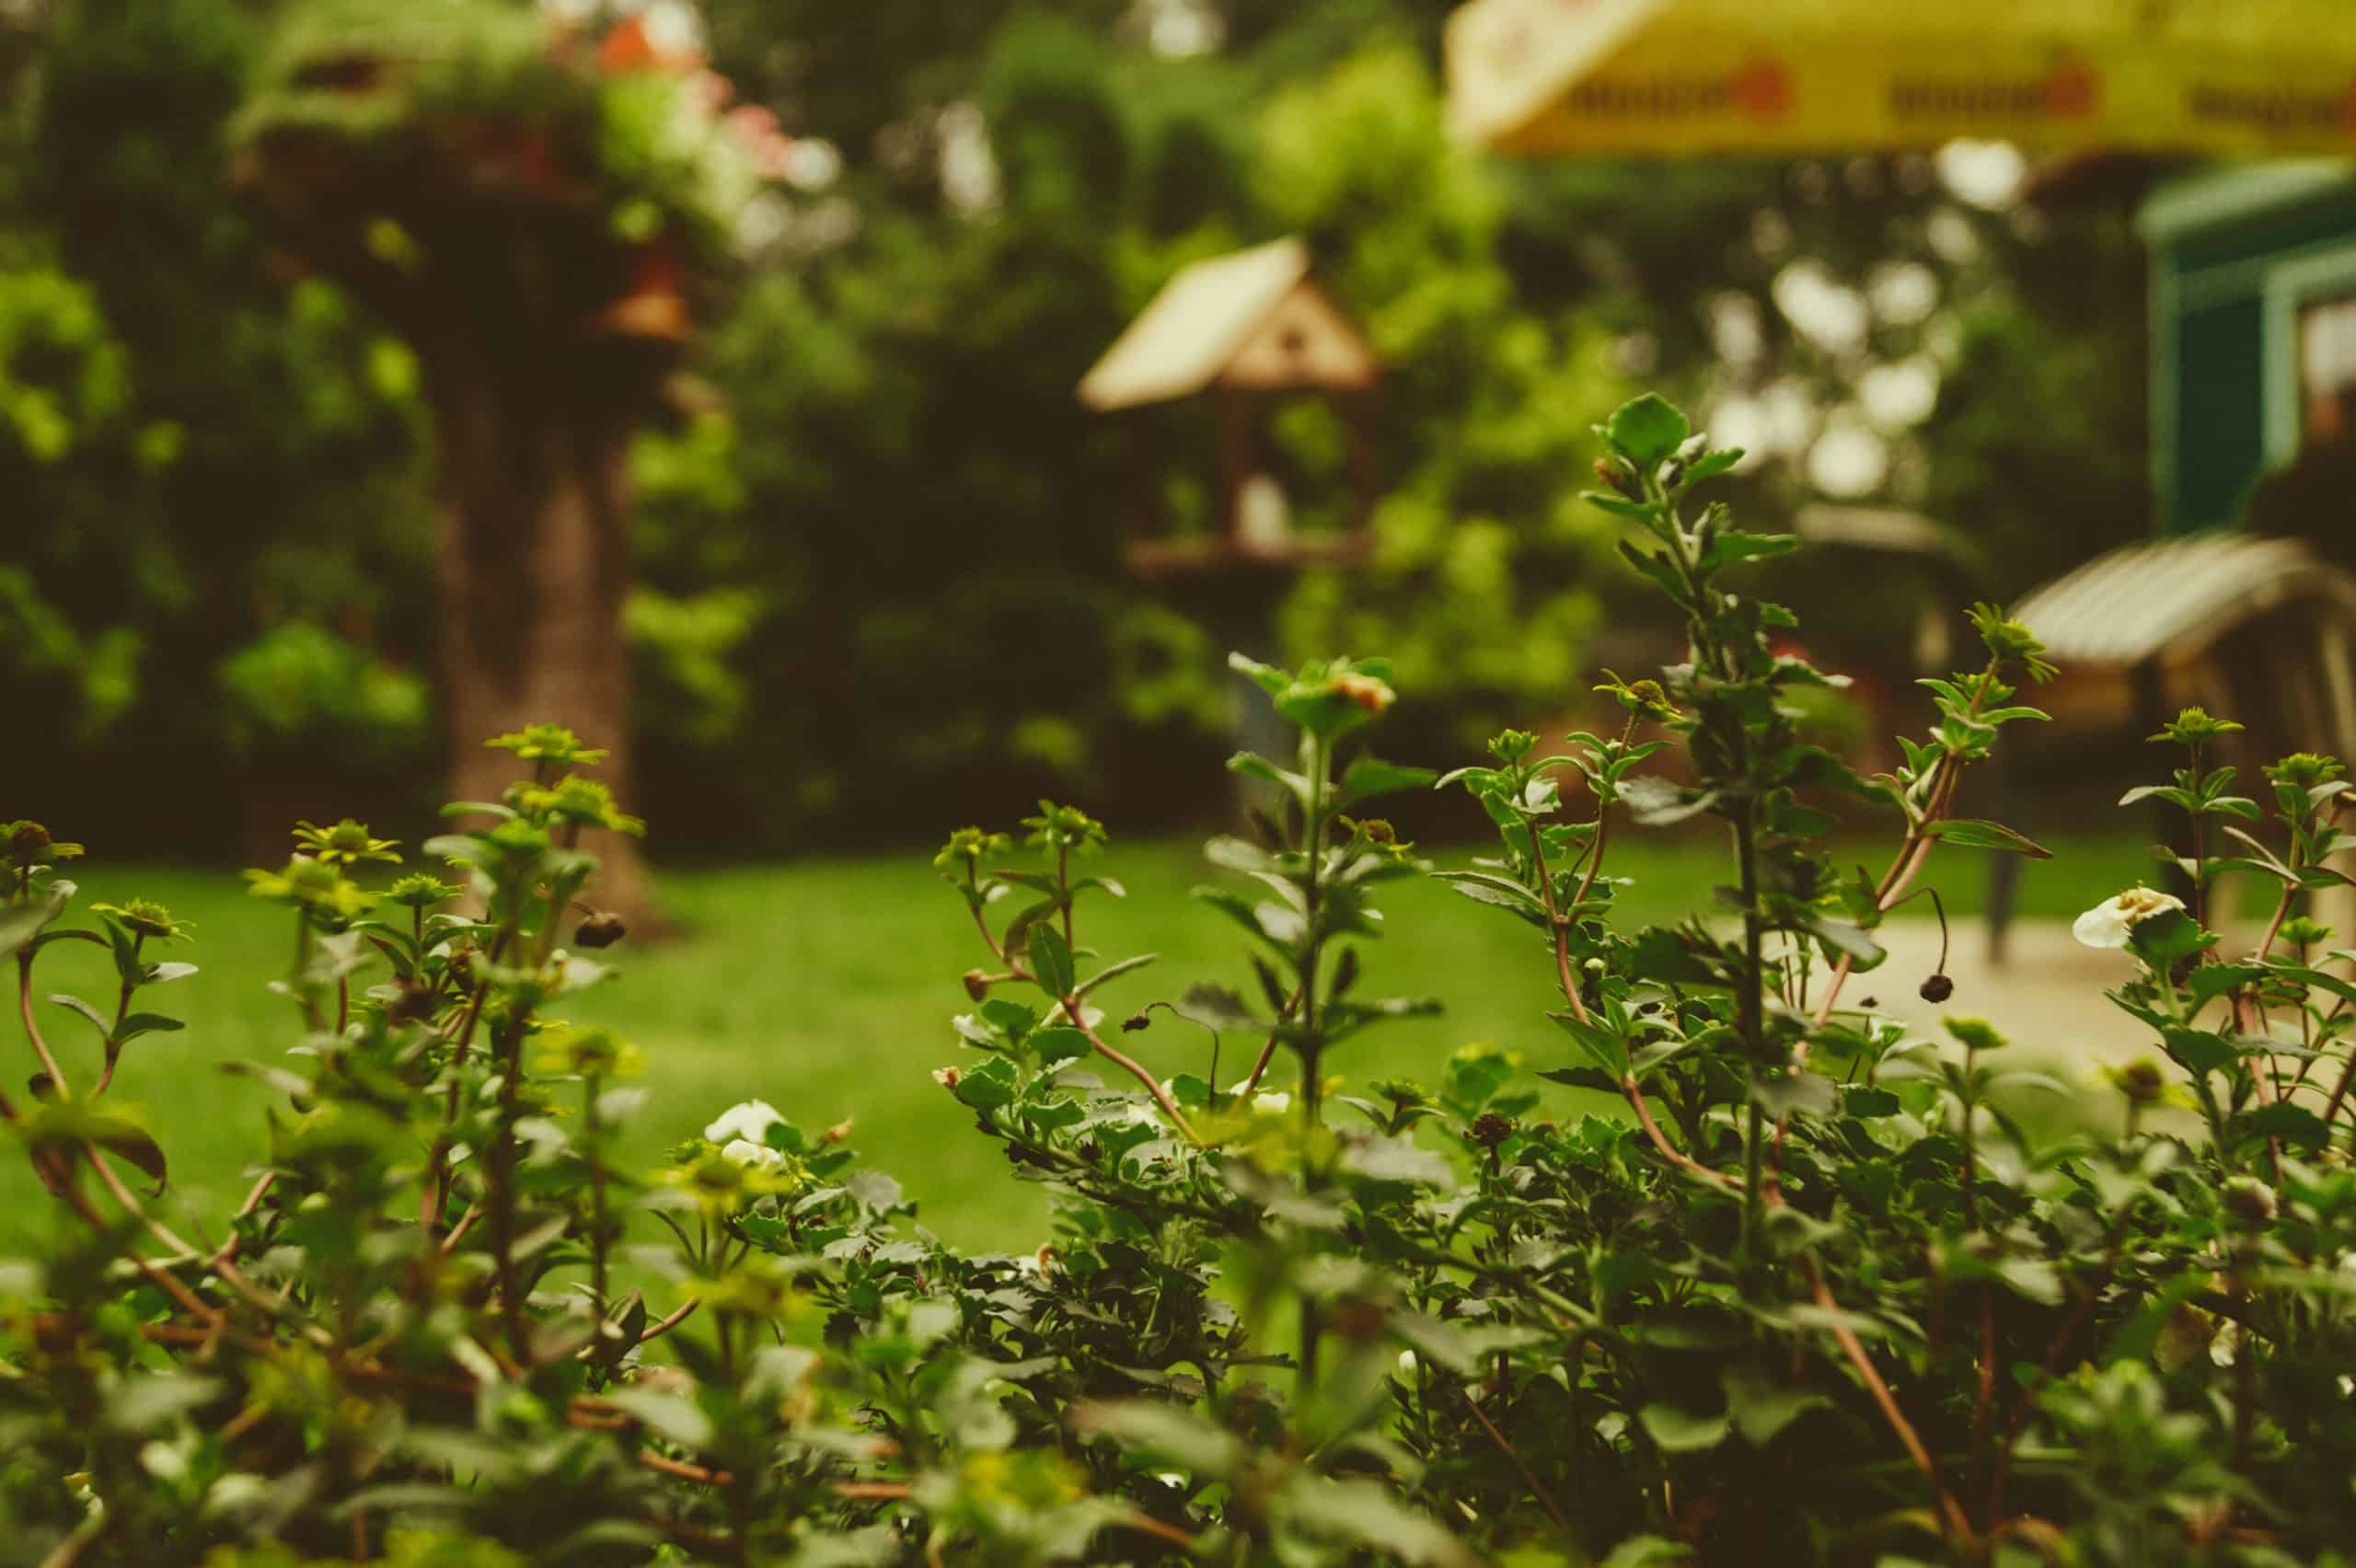 Factors To Consider While Buying Outdoor Gardening Plants